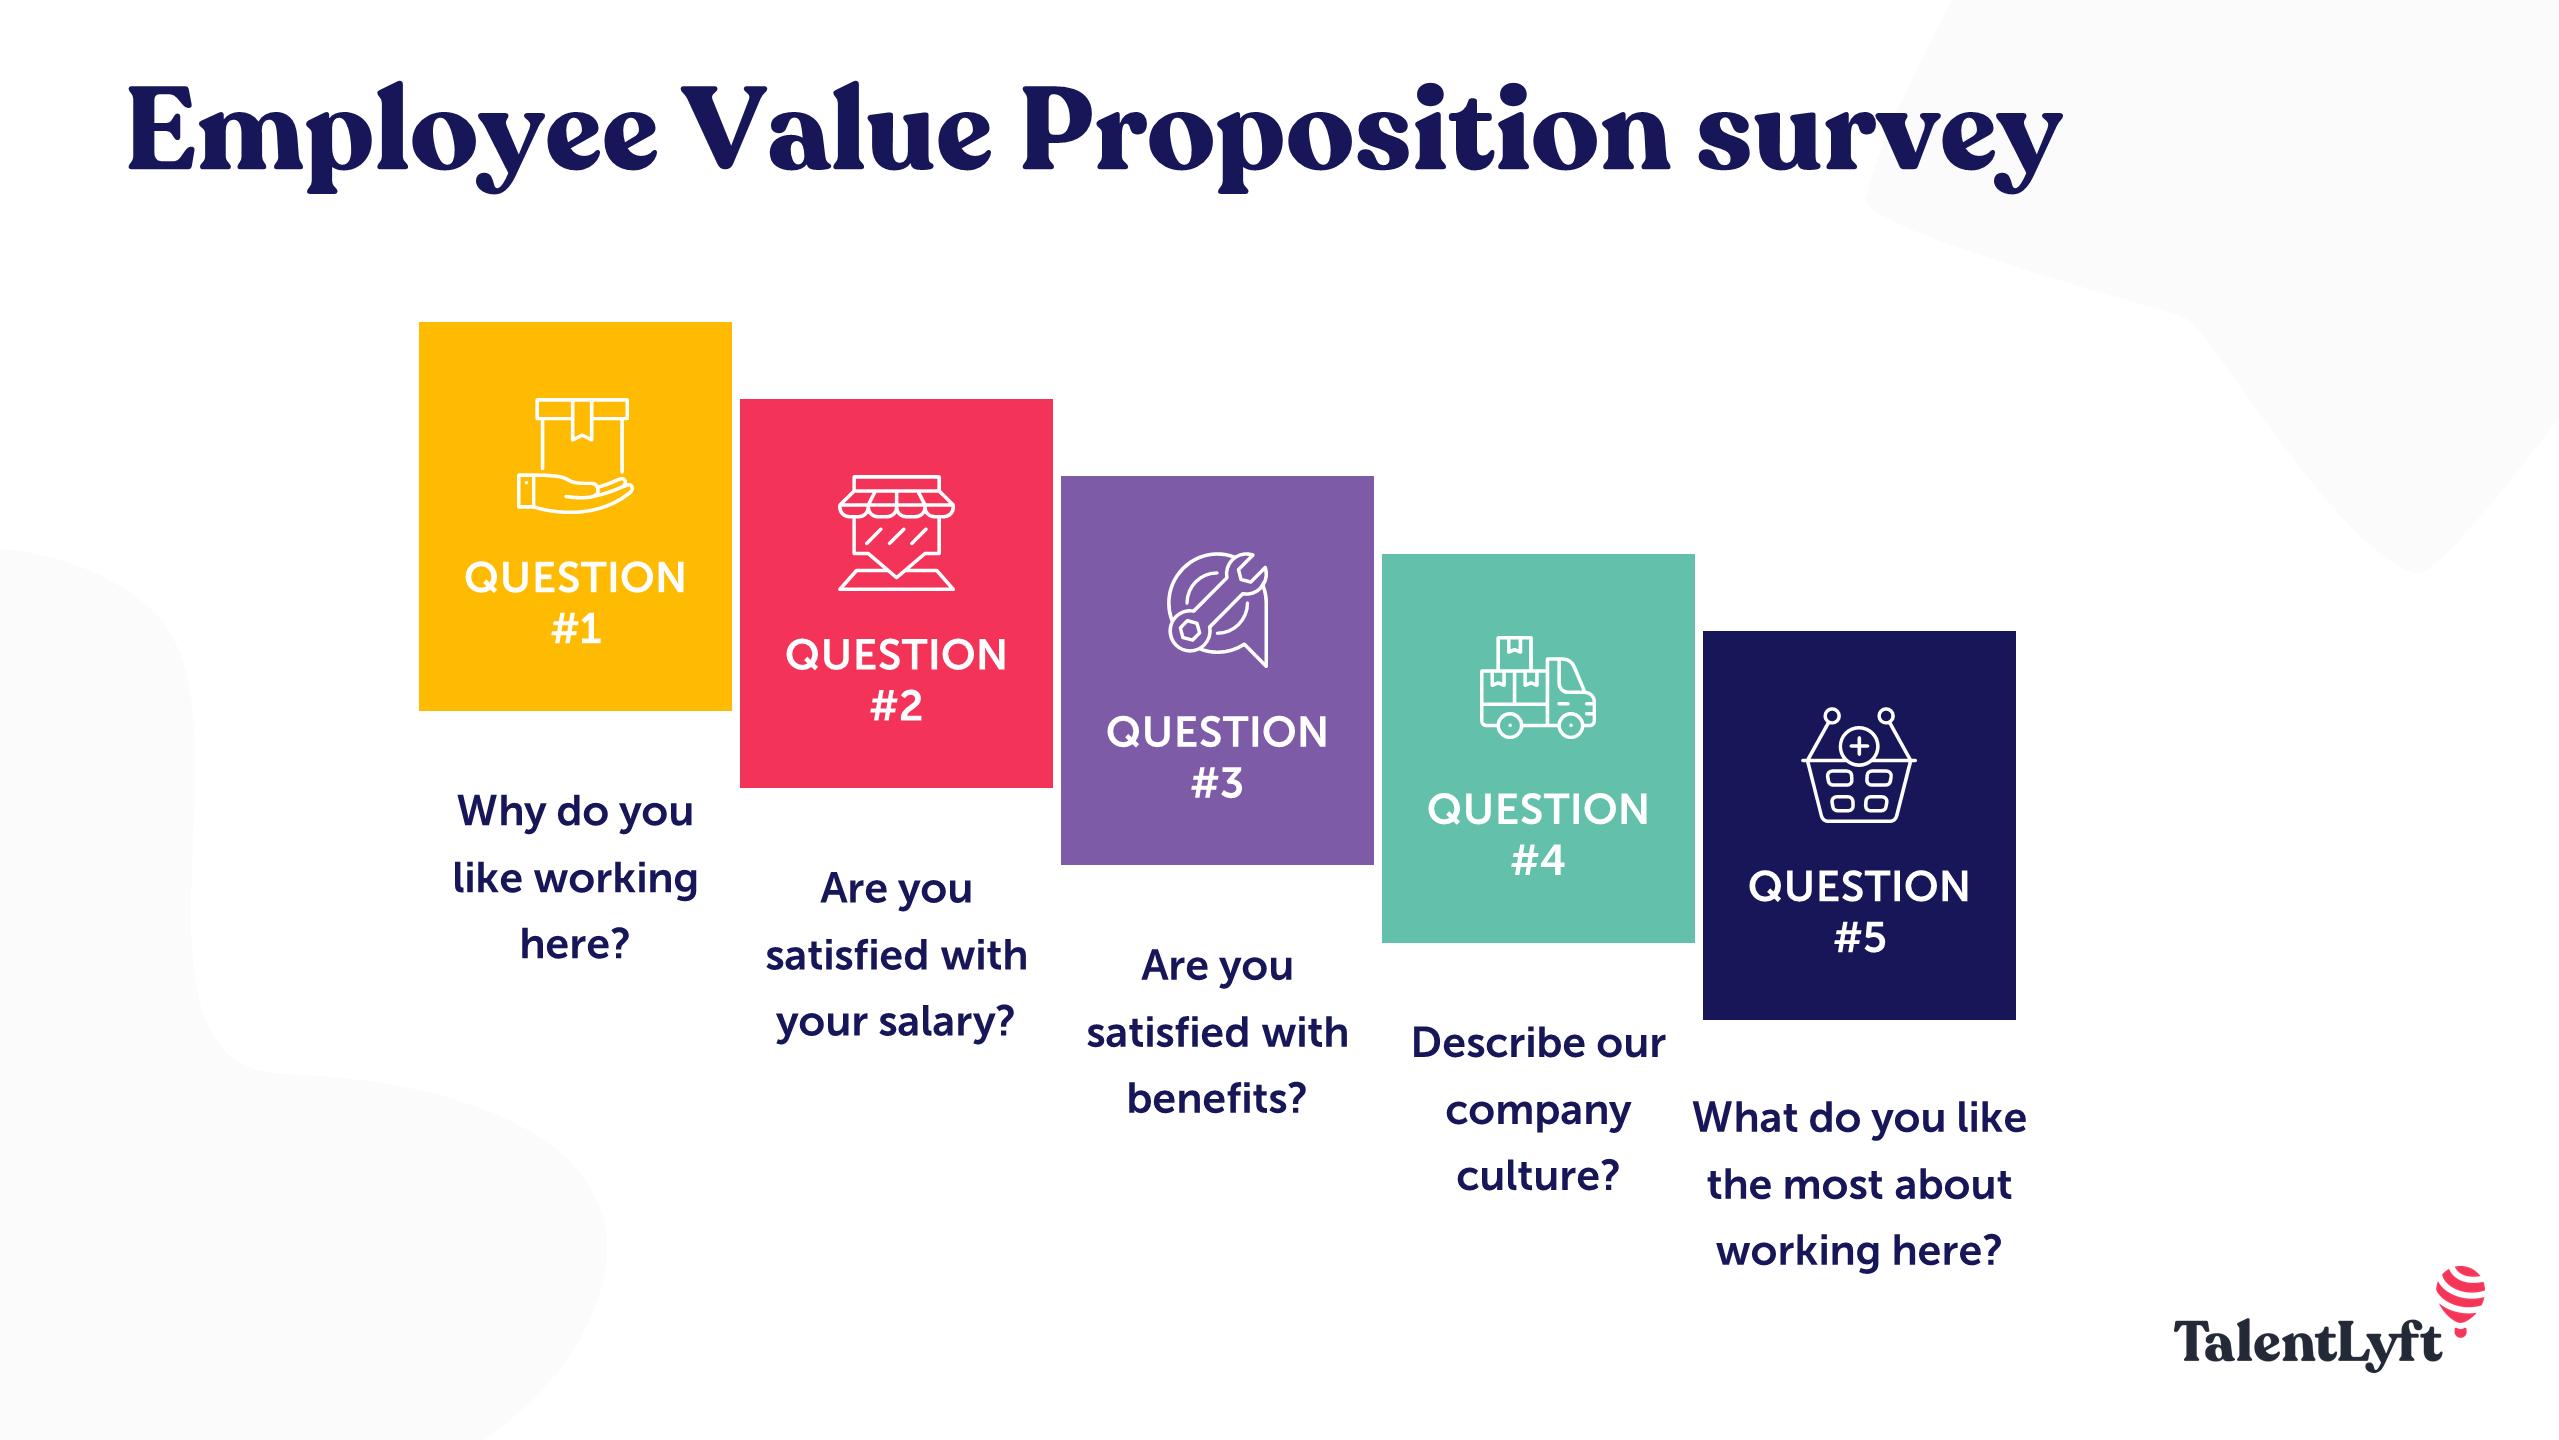 Employee value proposition survey questions